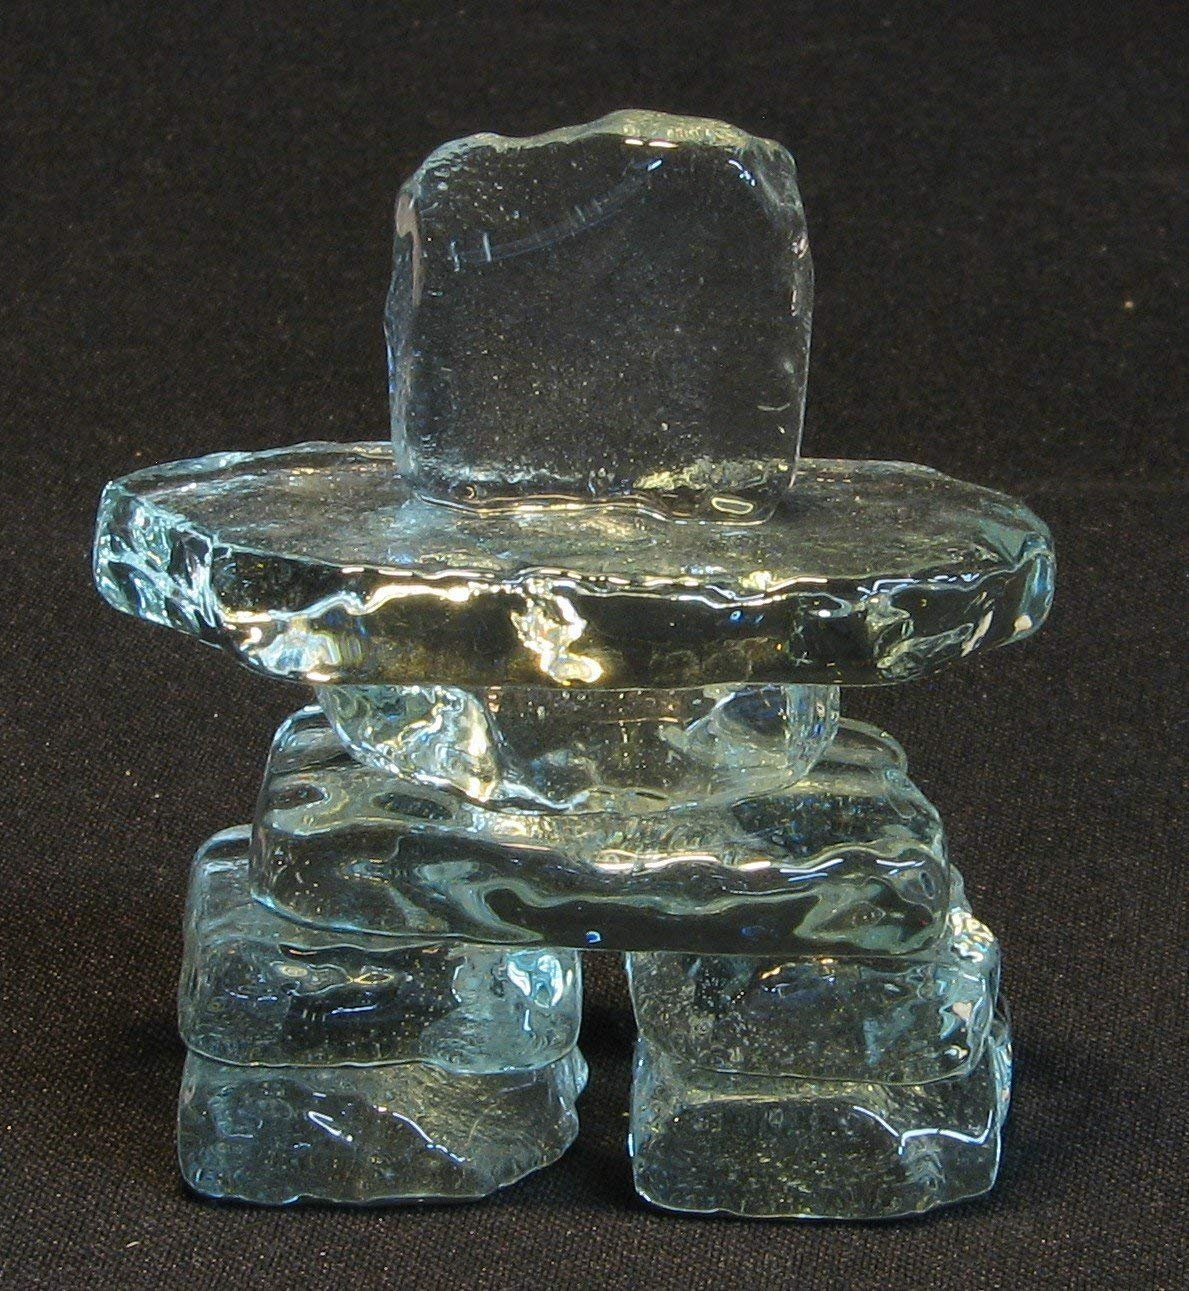 2.5 Clear Glass Inukshuk